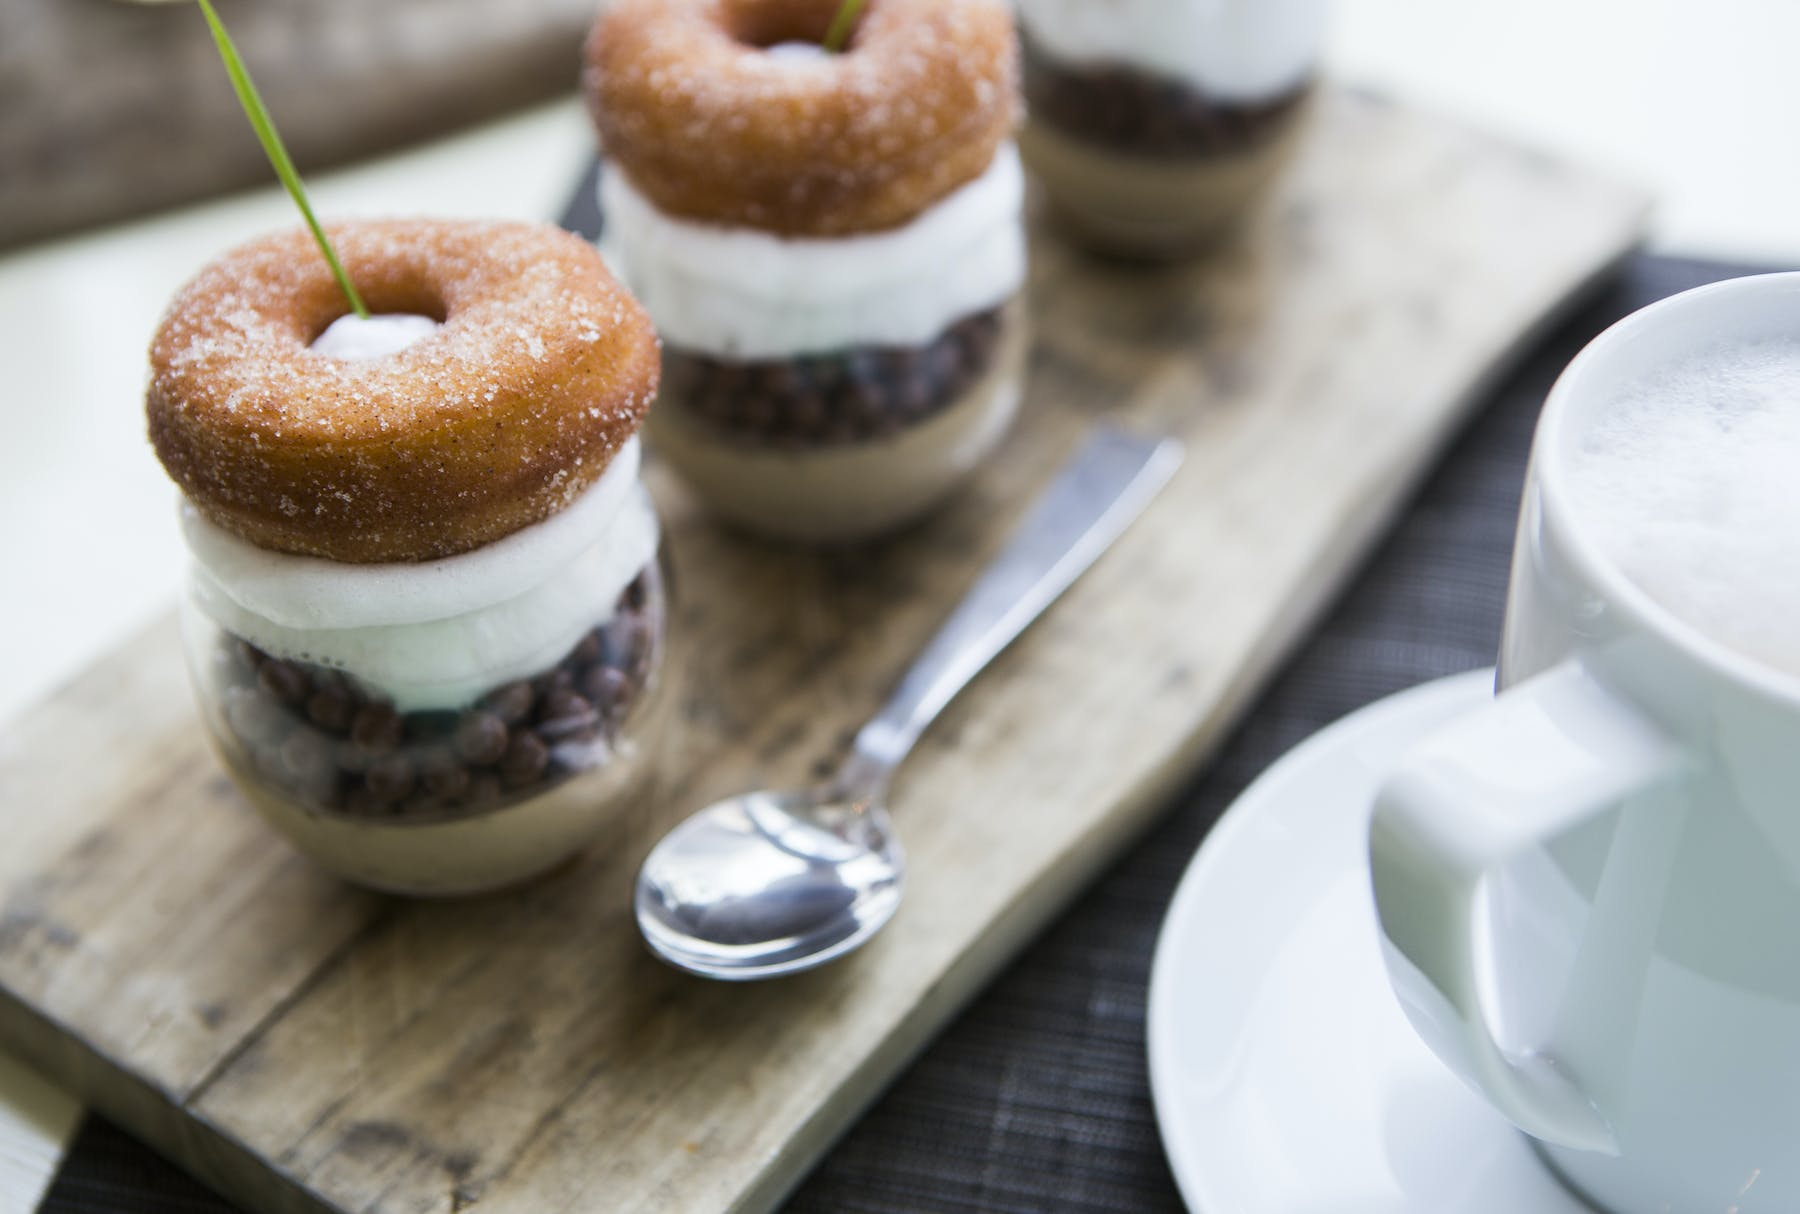 donut dessert glasses in  a table